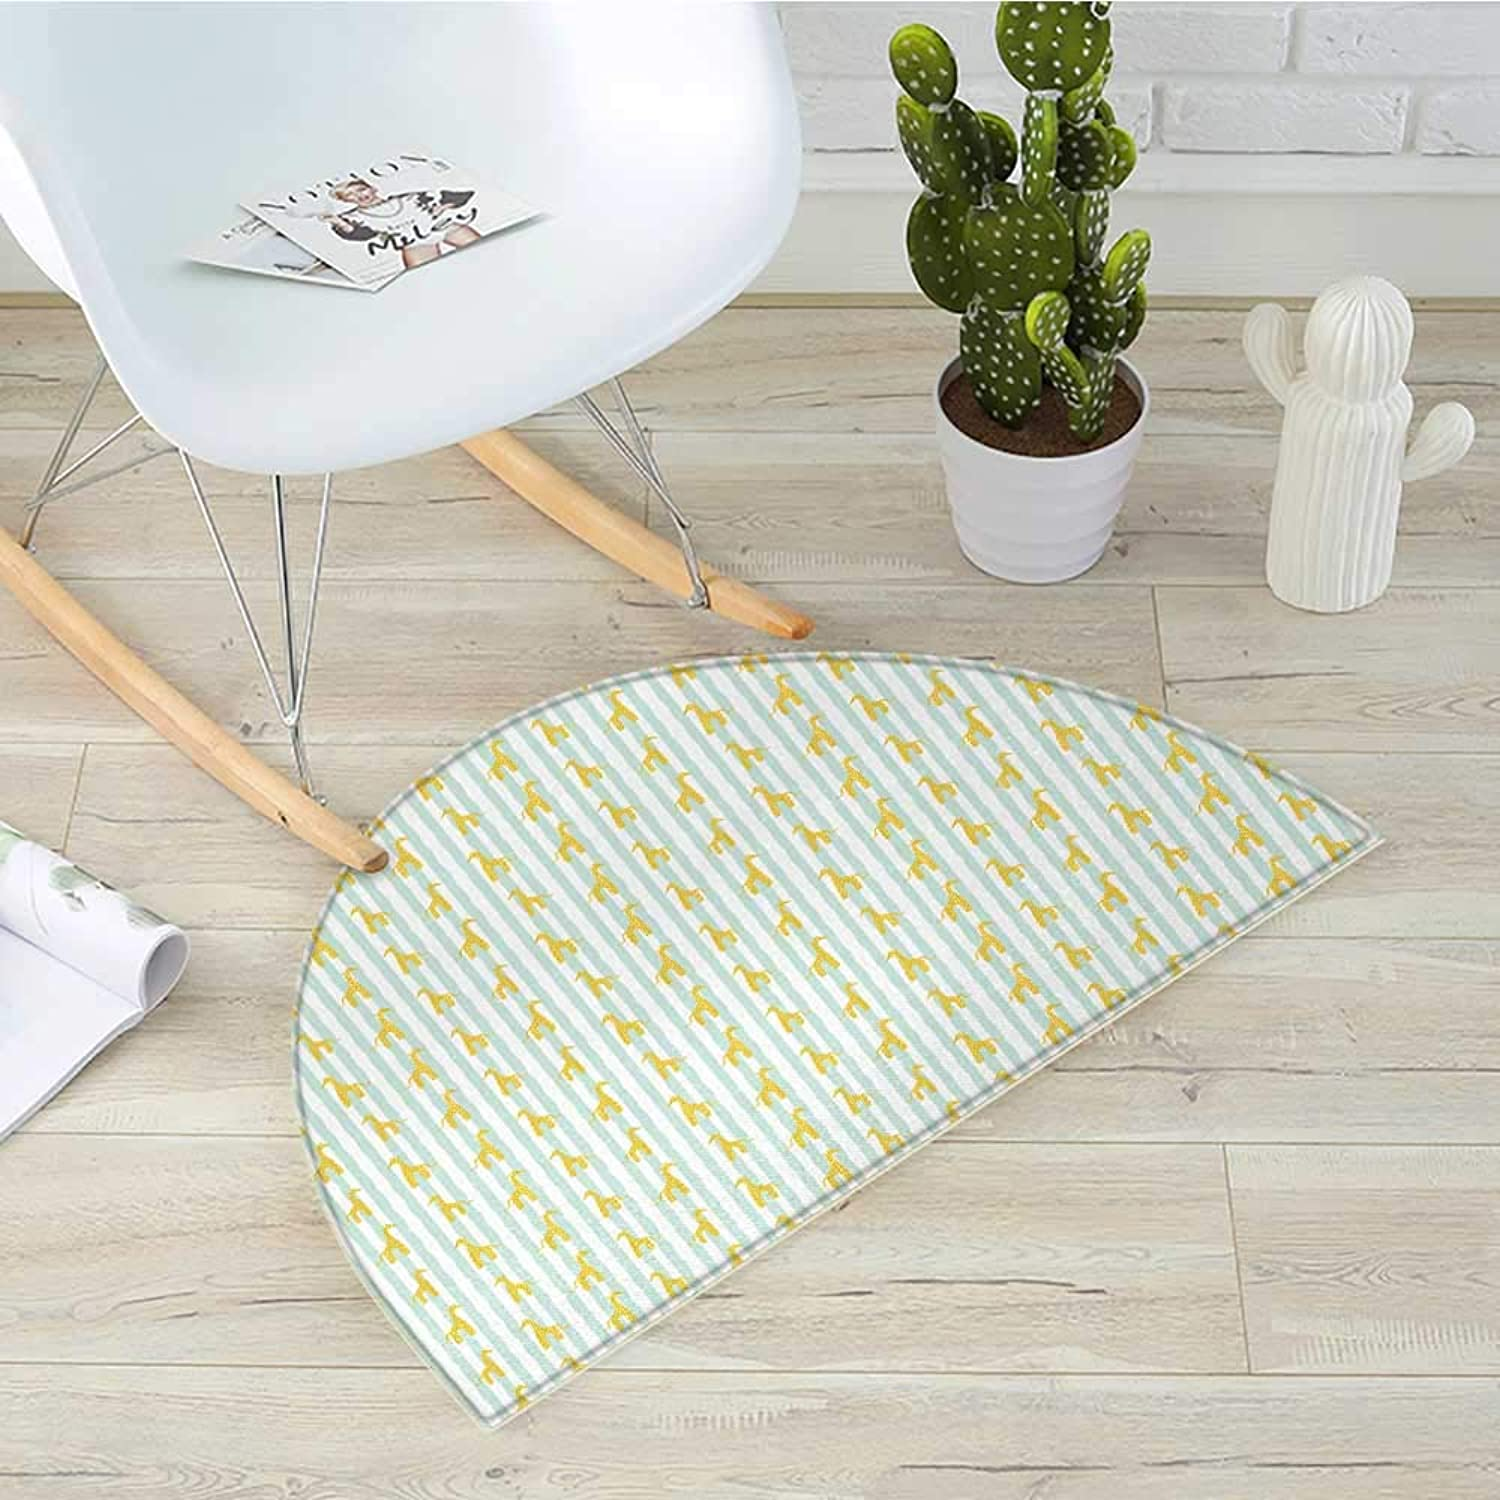 Giraffe Semicircular Cushiongreenical Stripes in Brushstroke Style Silhouettes with Yellow Spots Entry Door Mat H 31.5  xD 47.2  Mint Green Yellow White